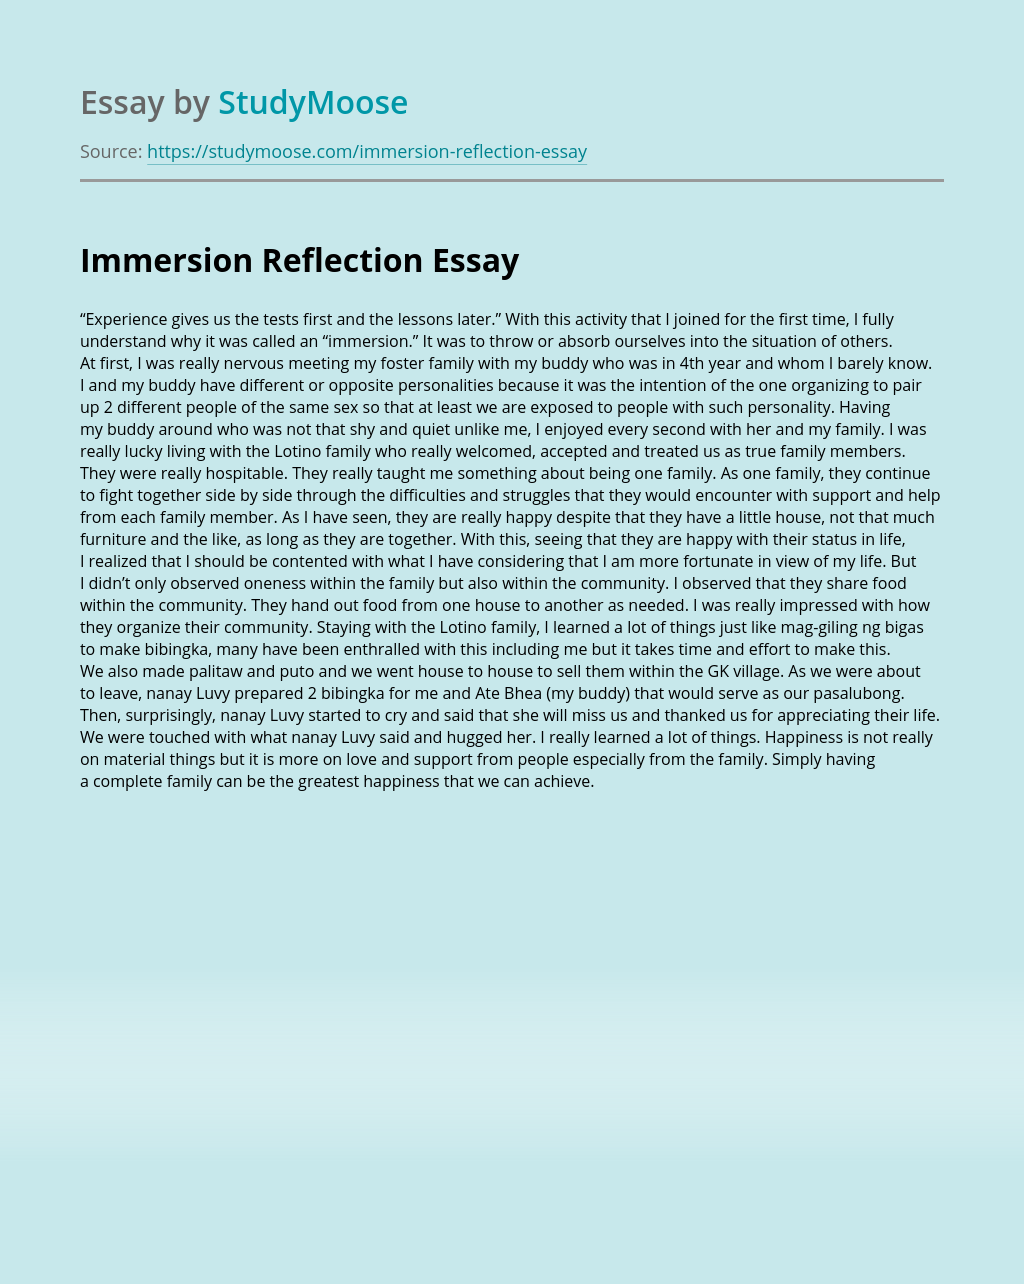 Immersion Reflection